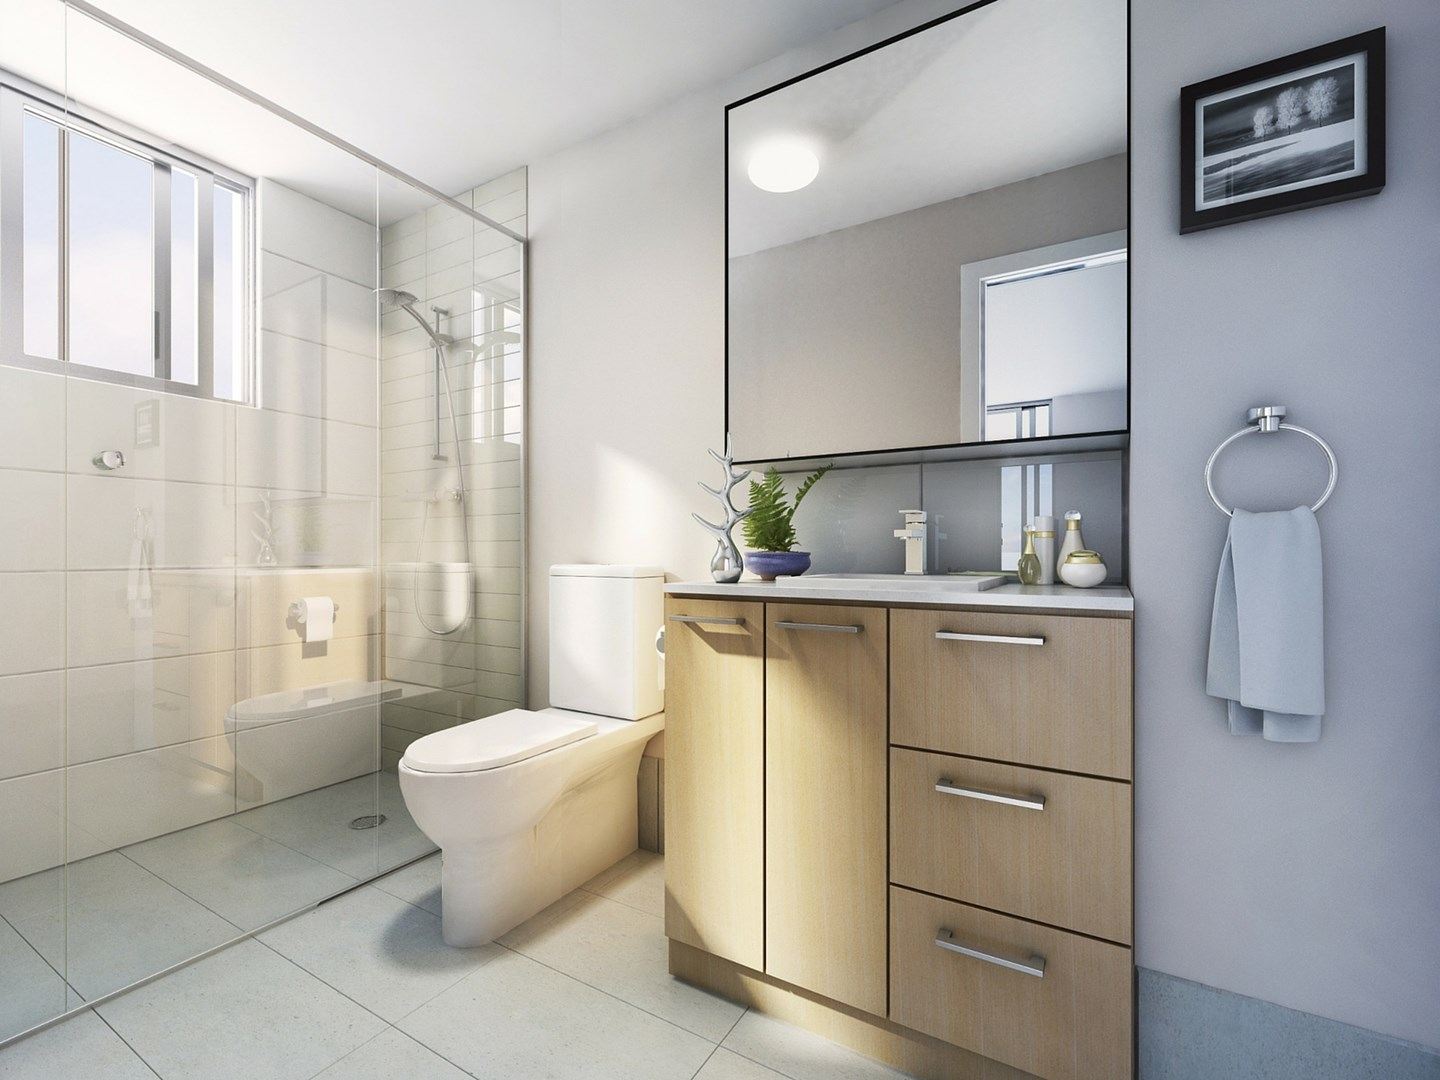 12 wharf street cleveland qld 4163 off the plan apartment for